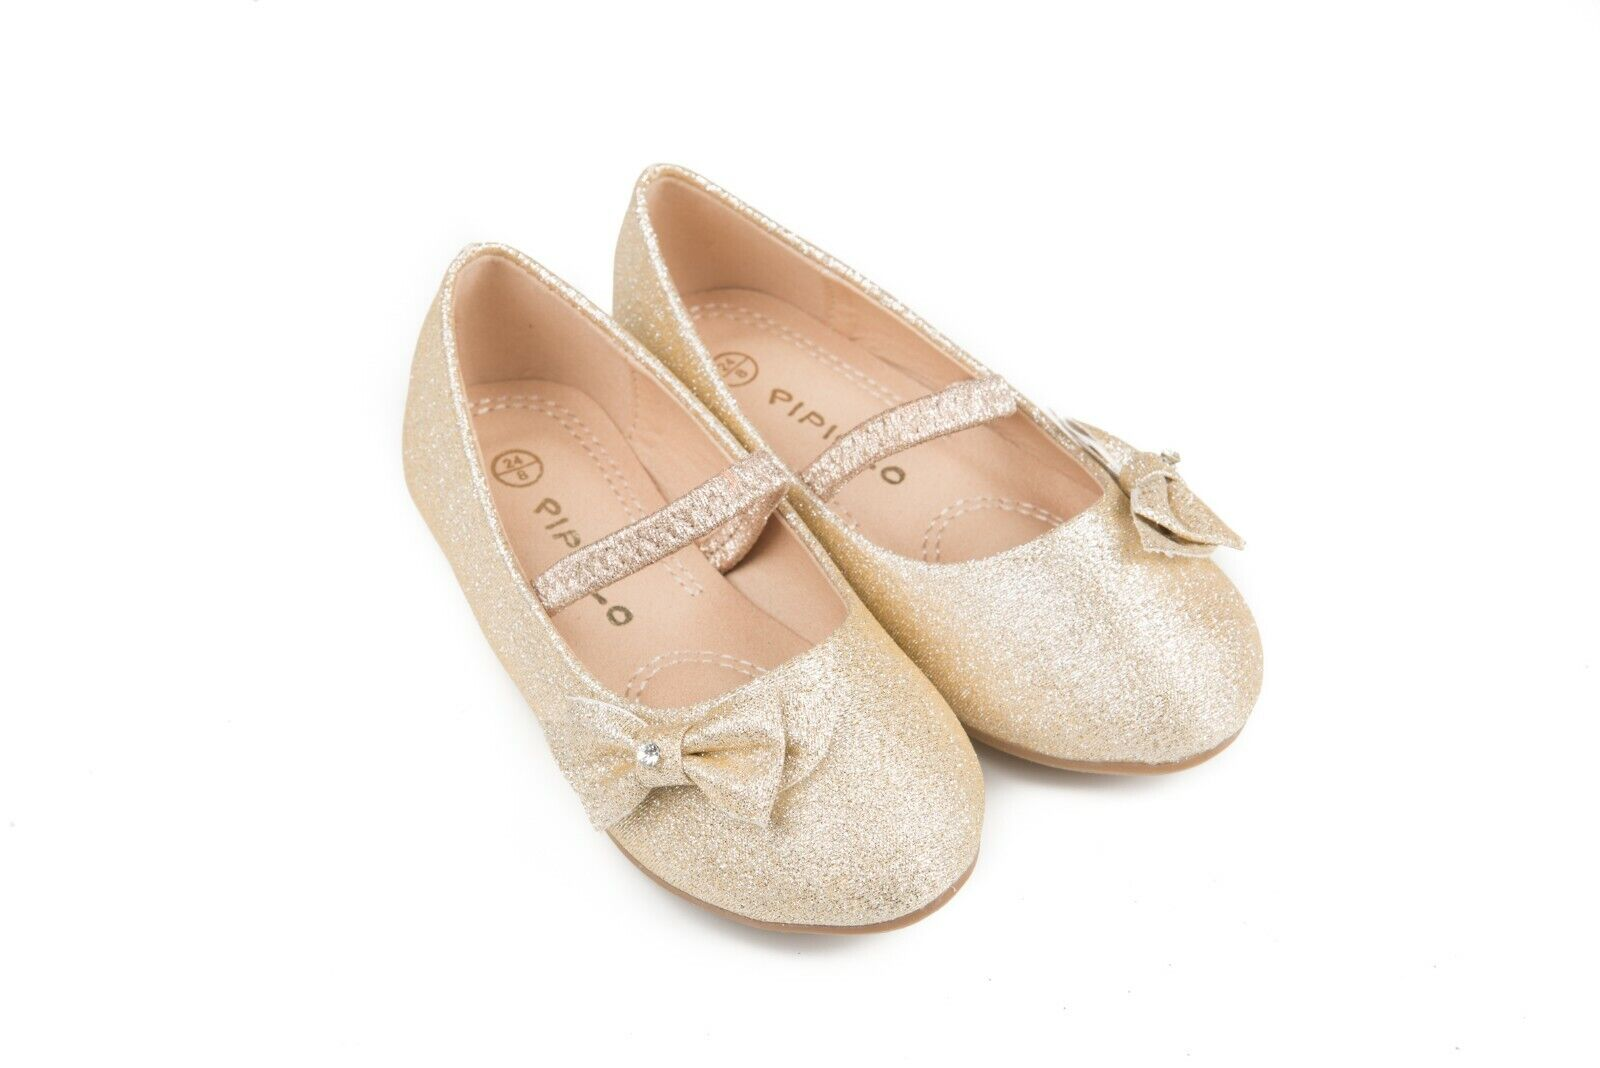 Pipiolo Mary Jane Ballerina Flats – Shoes for Girls